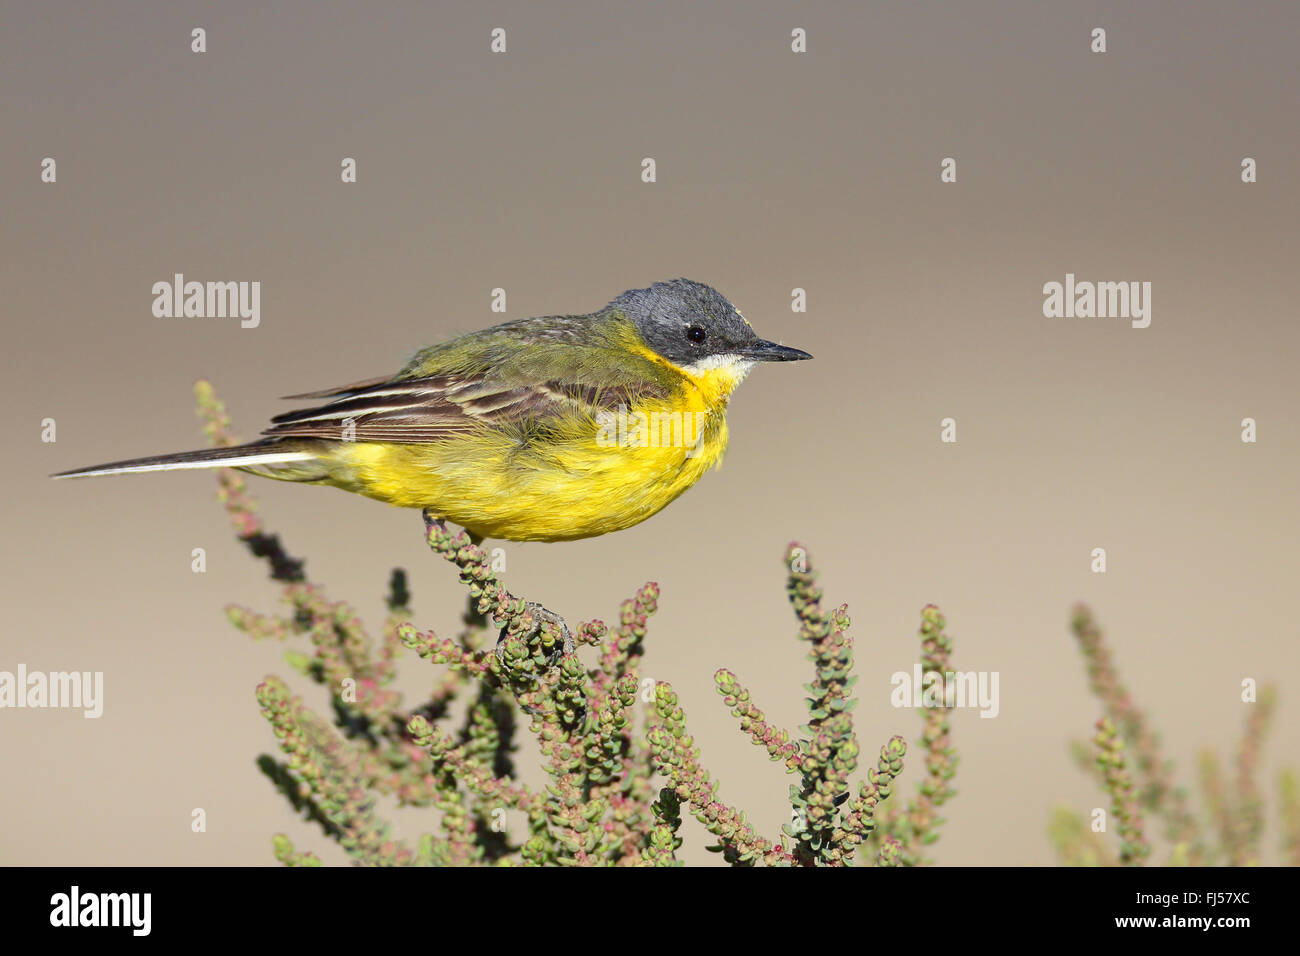 Ashy-headed Wagtail, Yellow wagtail (Motacilla flava cinereocapilla), male sitting on a succulent shrub, France, - Stock Image